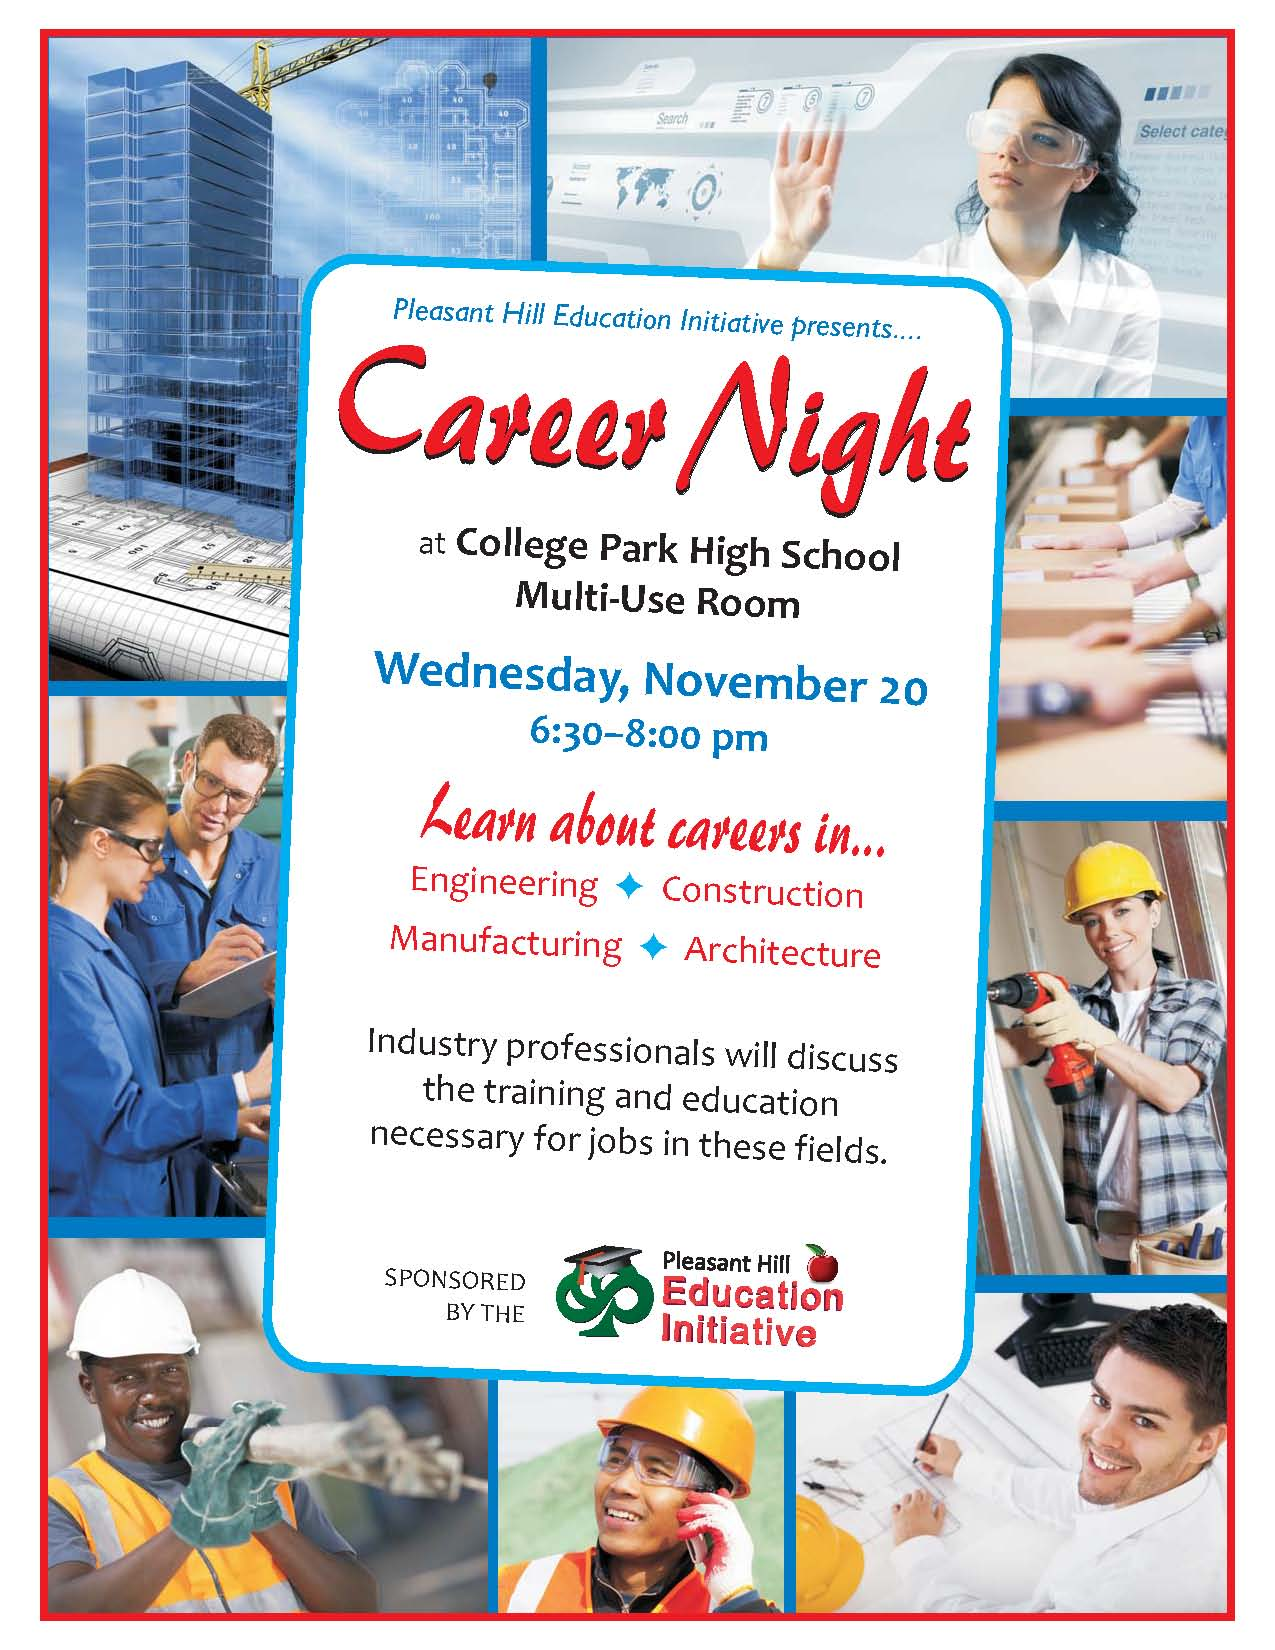 Career Night Flyer 11-20-13_revised.jpg